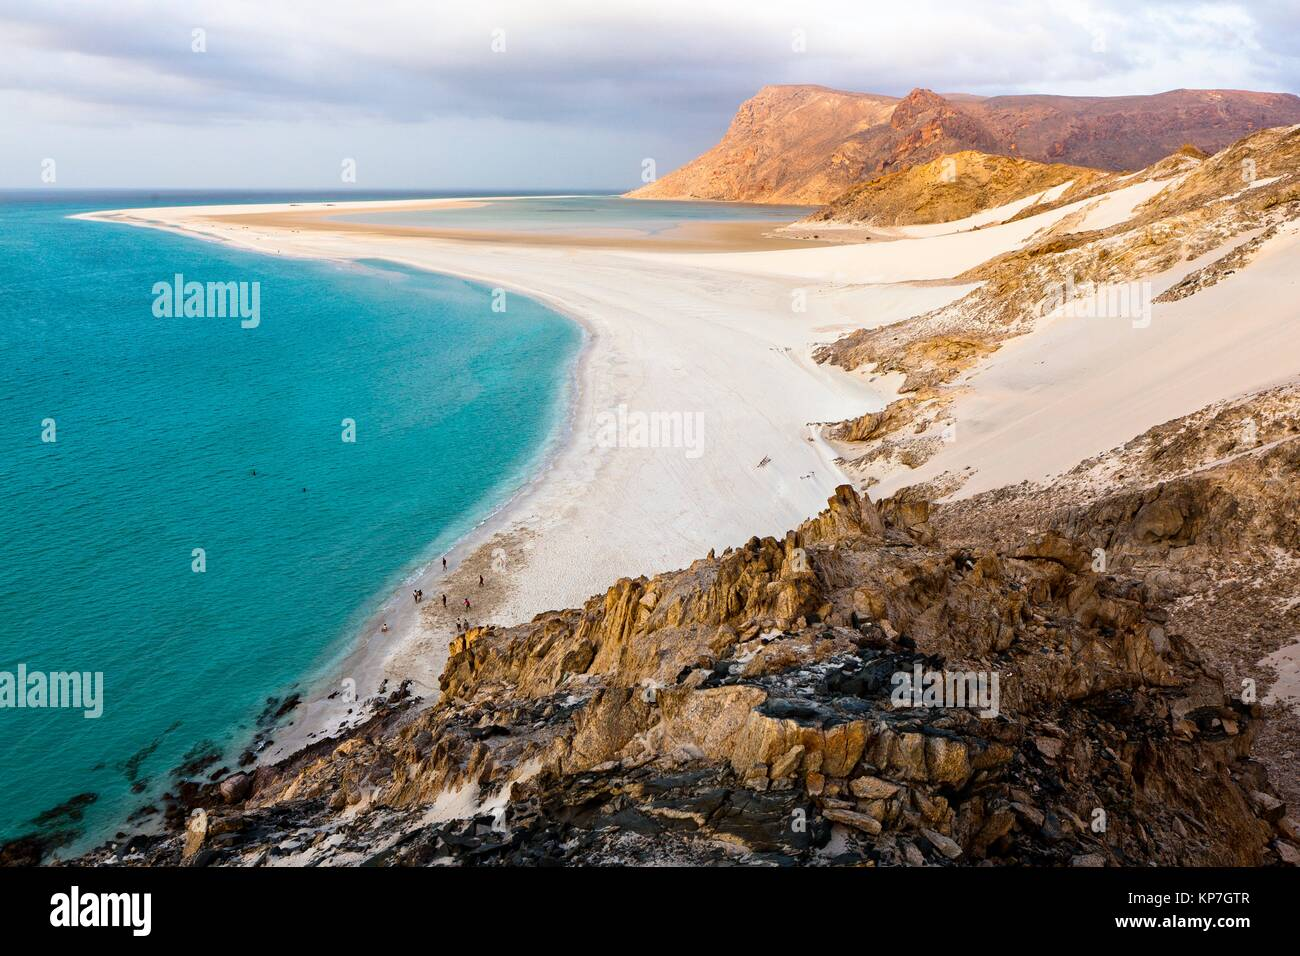 Ditwah lagoon near Qalansiyah, Socotra island, listed as World Heritage by UNESCO, Yemen, Arabia, West Asia - Stock Image